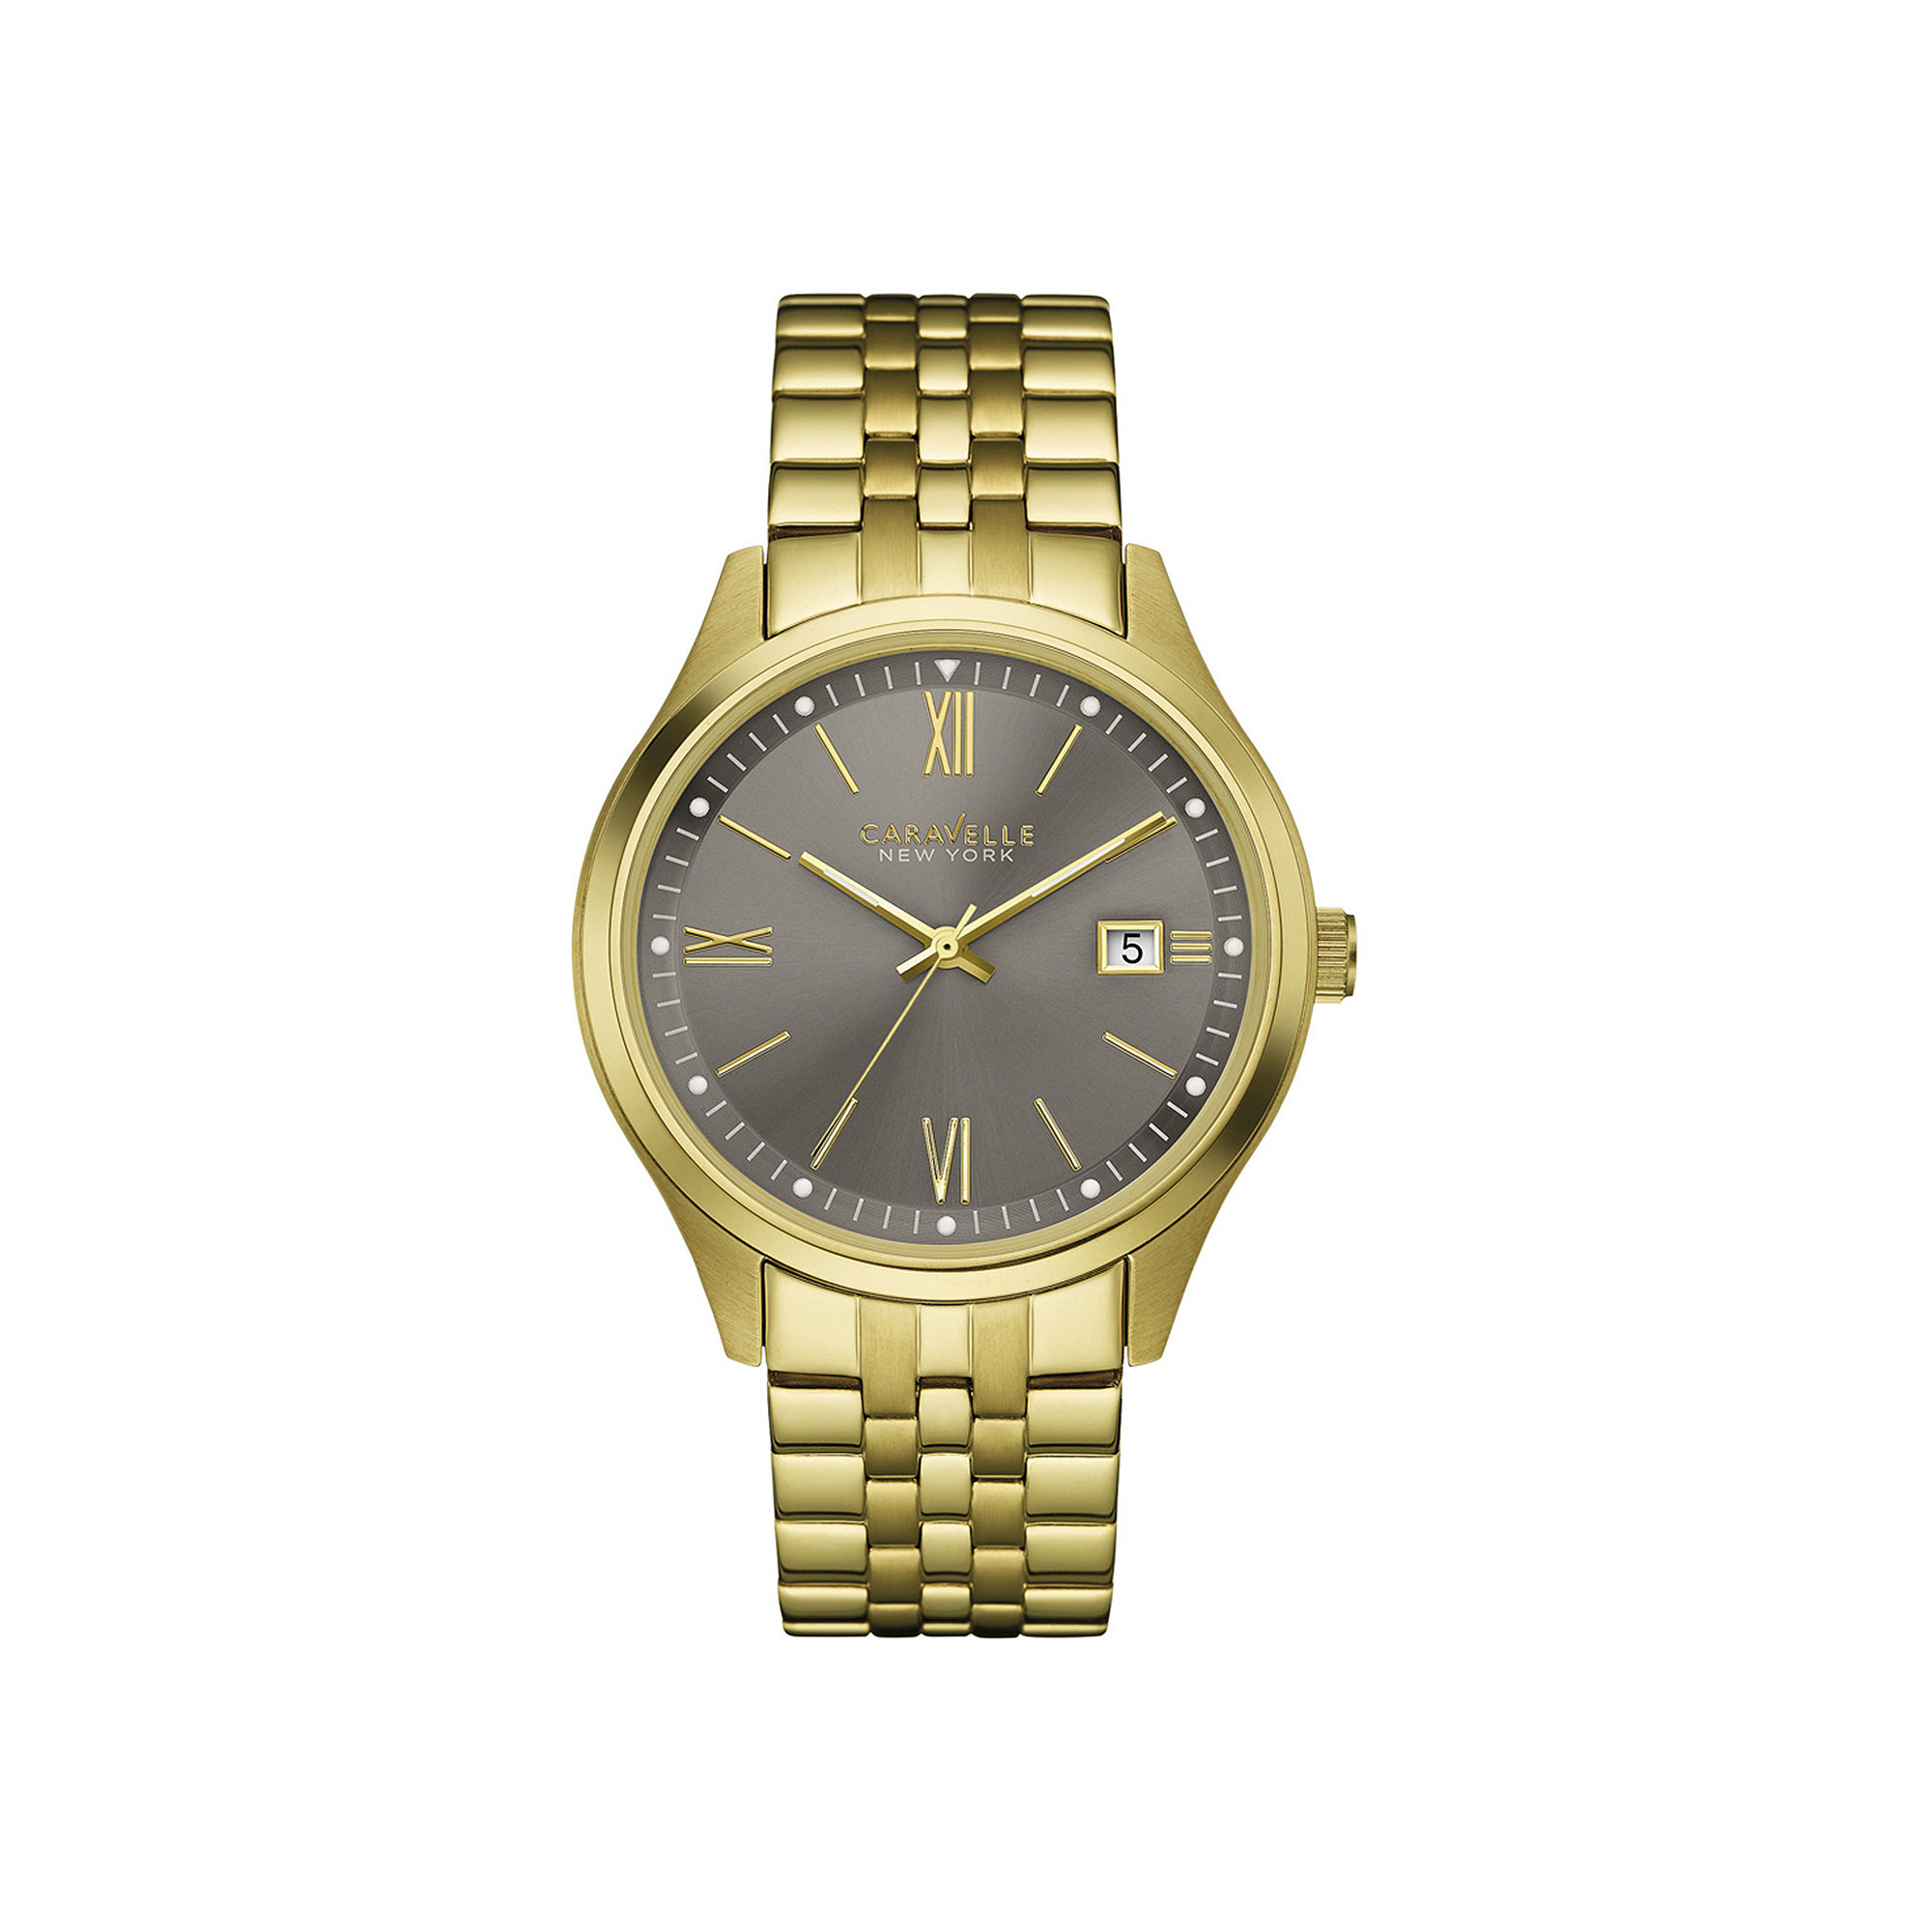 Caravelle New York Mens Gold-Tone Stainless Steel Watch 44B111